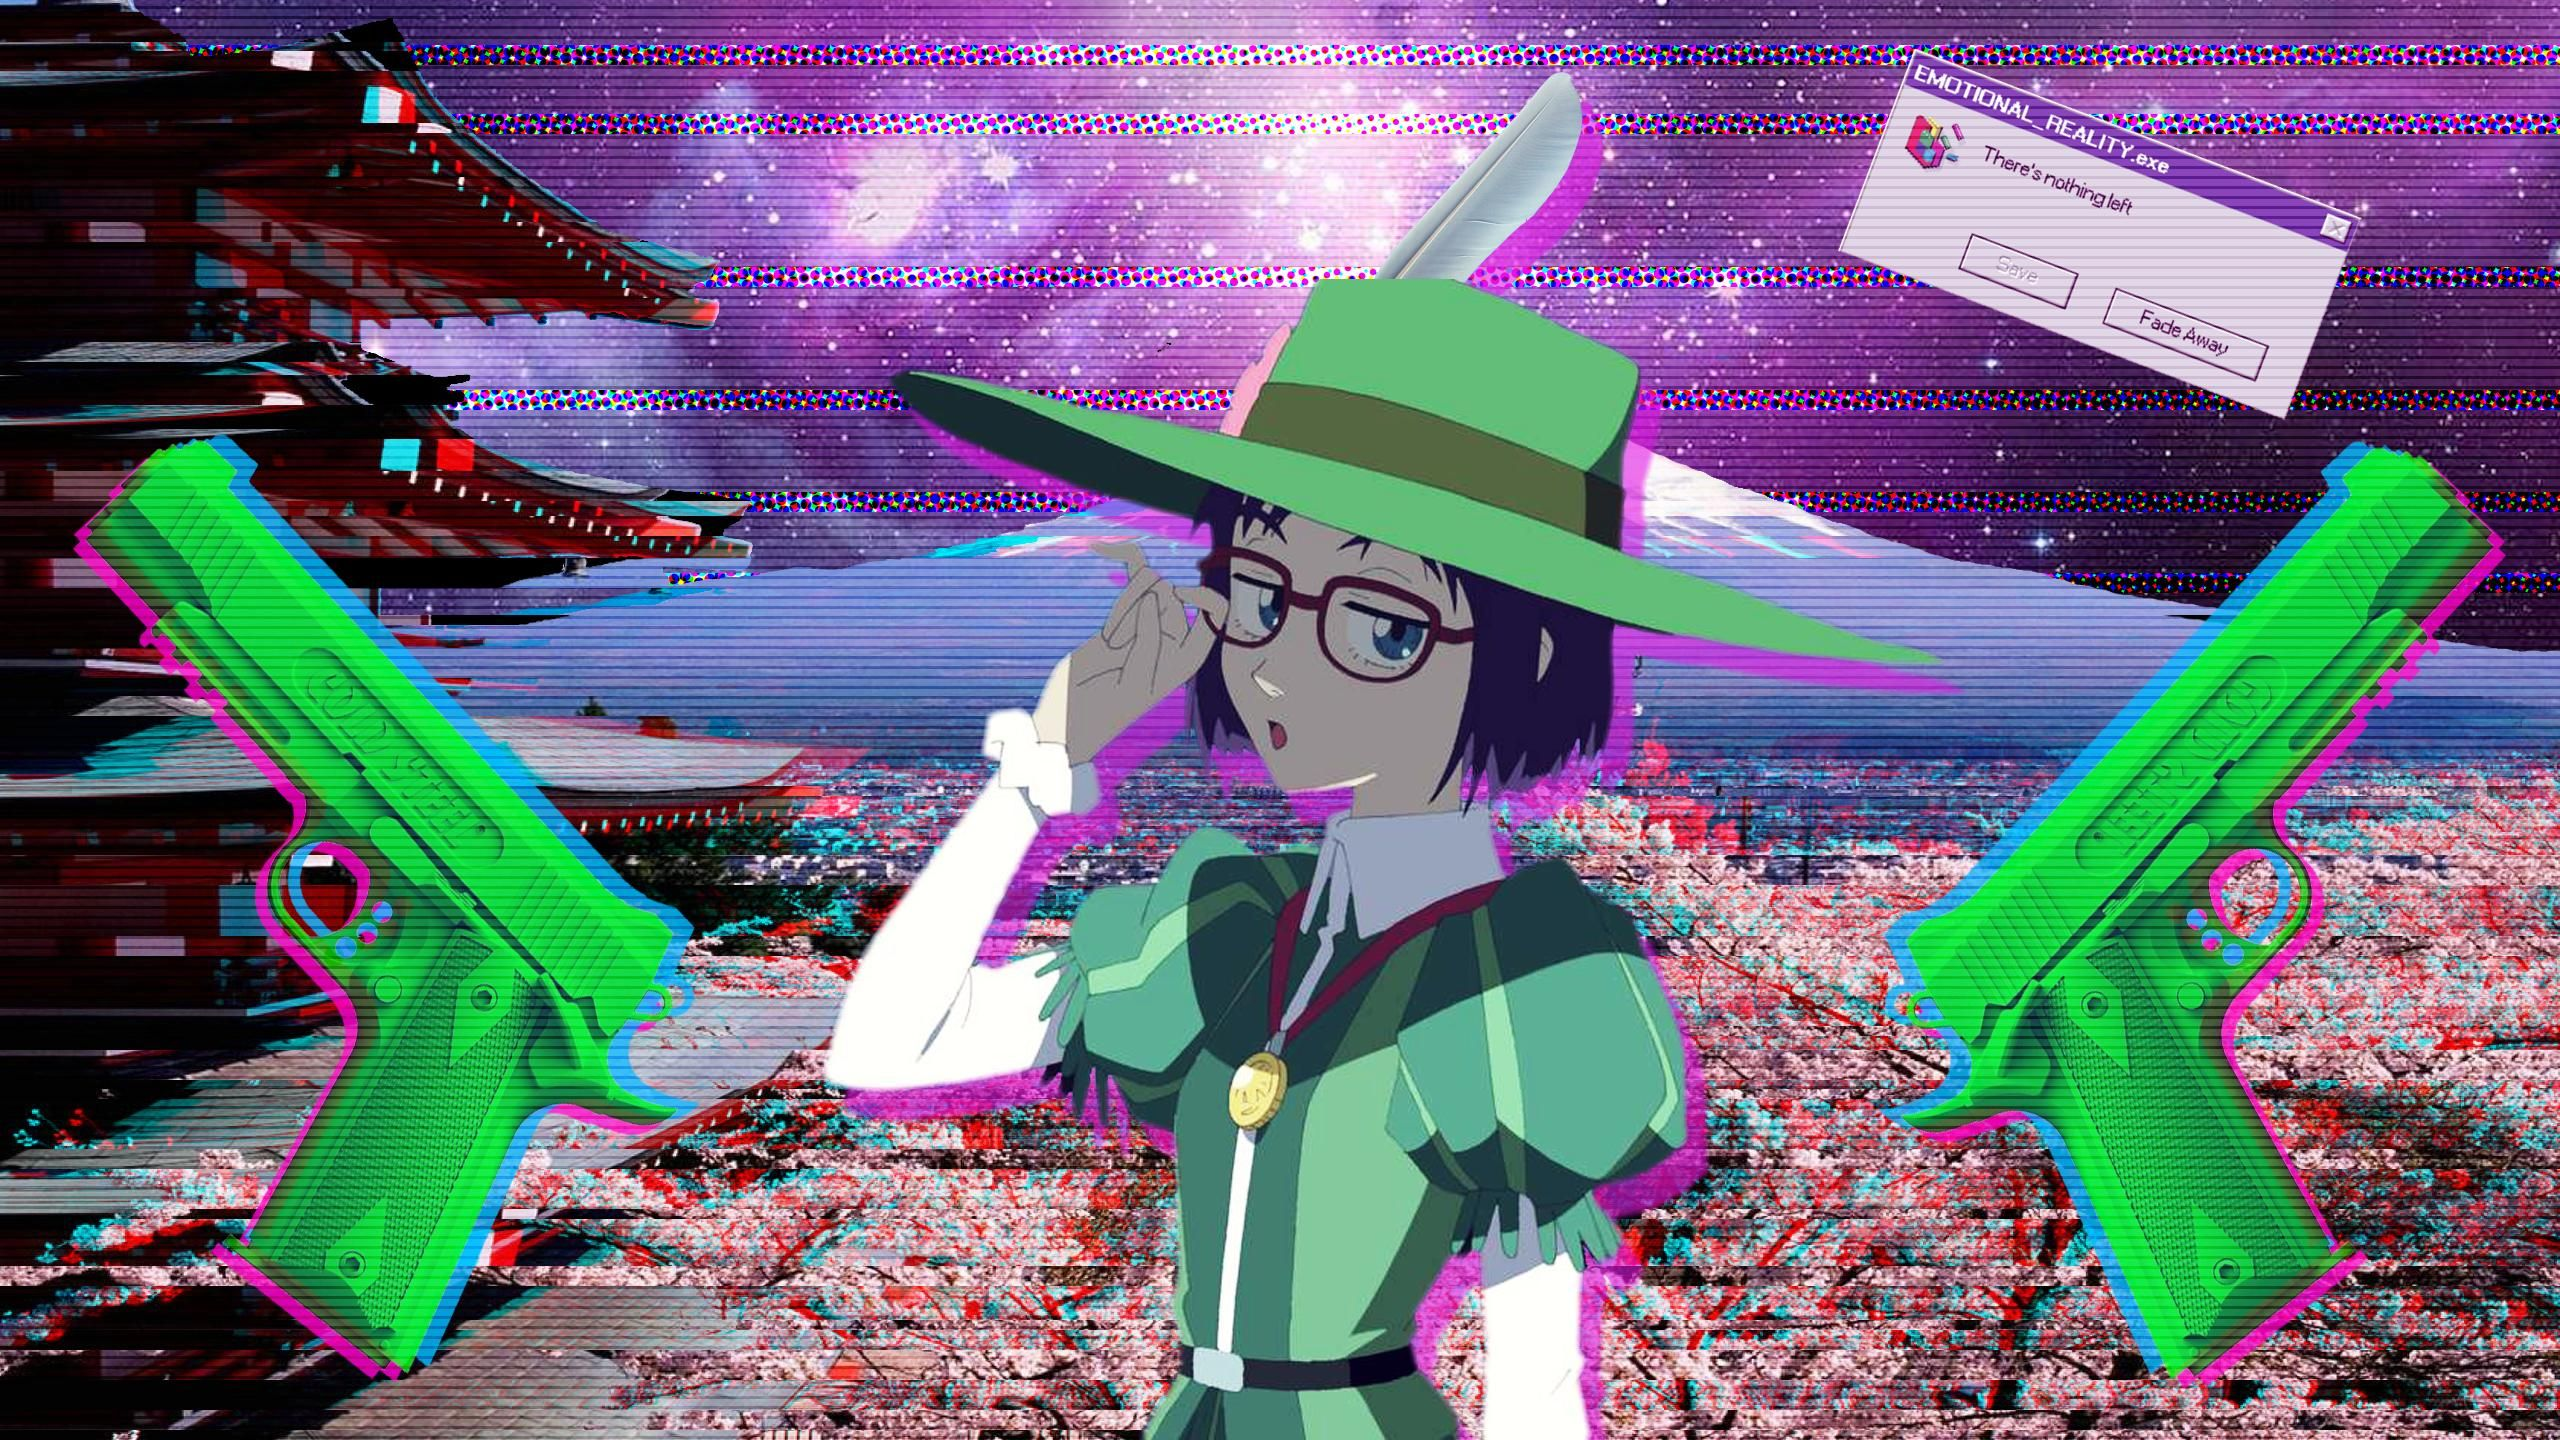 Wallpaper Anime Glitch Hd Glitch Art Anime Kesho Wazo Wallpaper Anime Girls Glitch Art Mlg 1920x1080 Hd Anime Wallpapers Anime Wallpaper Vaporwave Wallpaper